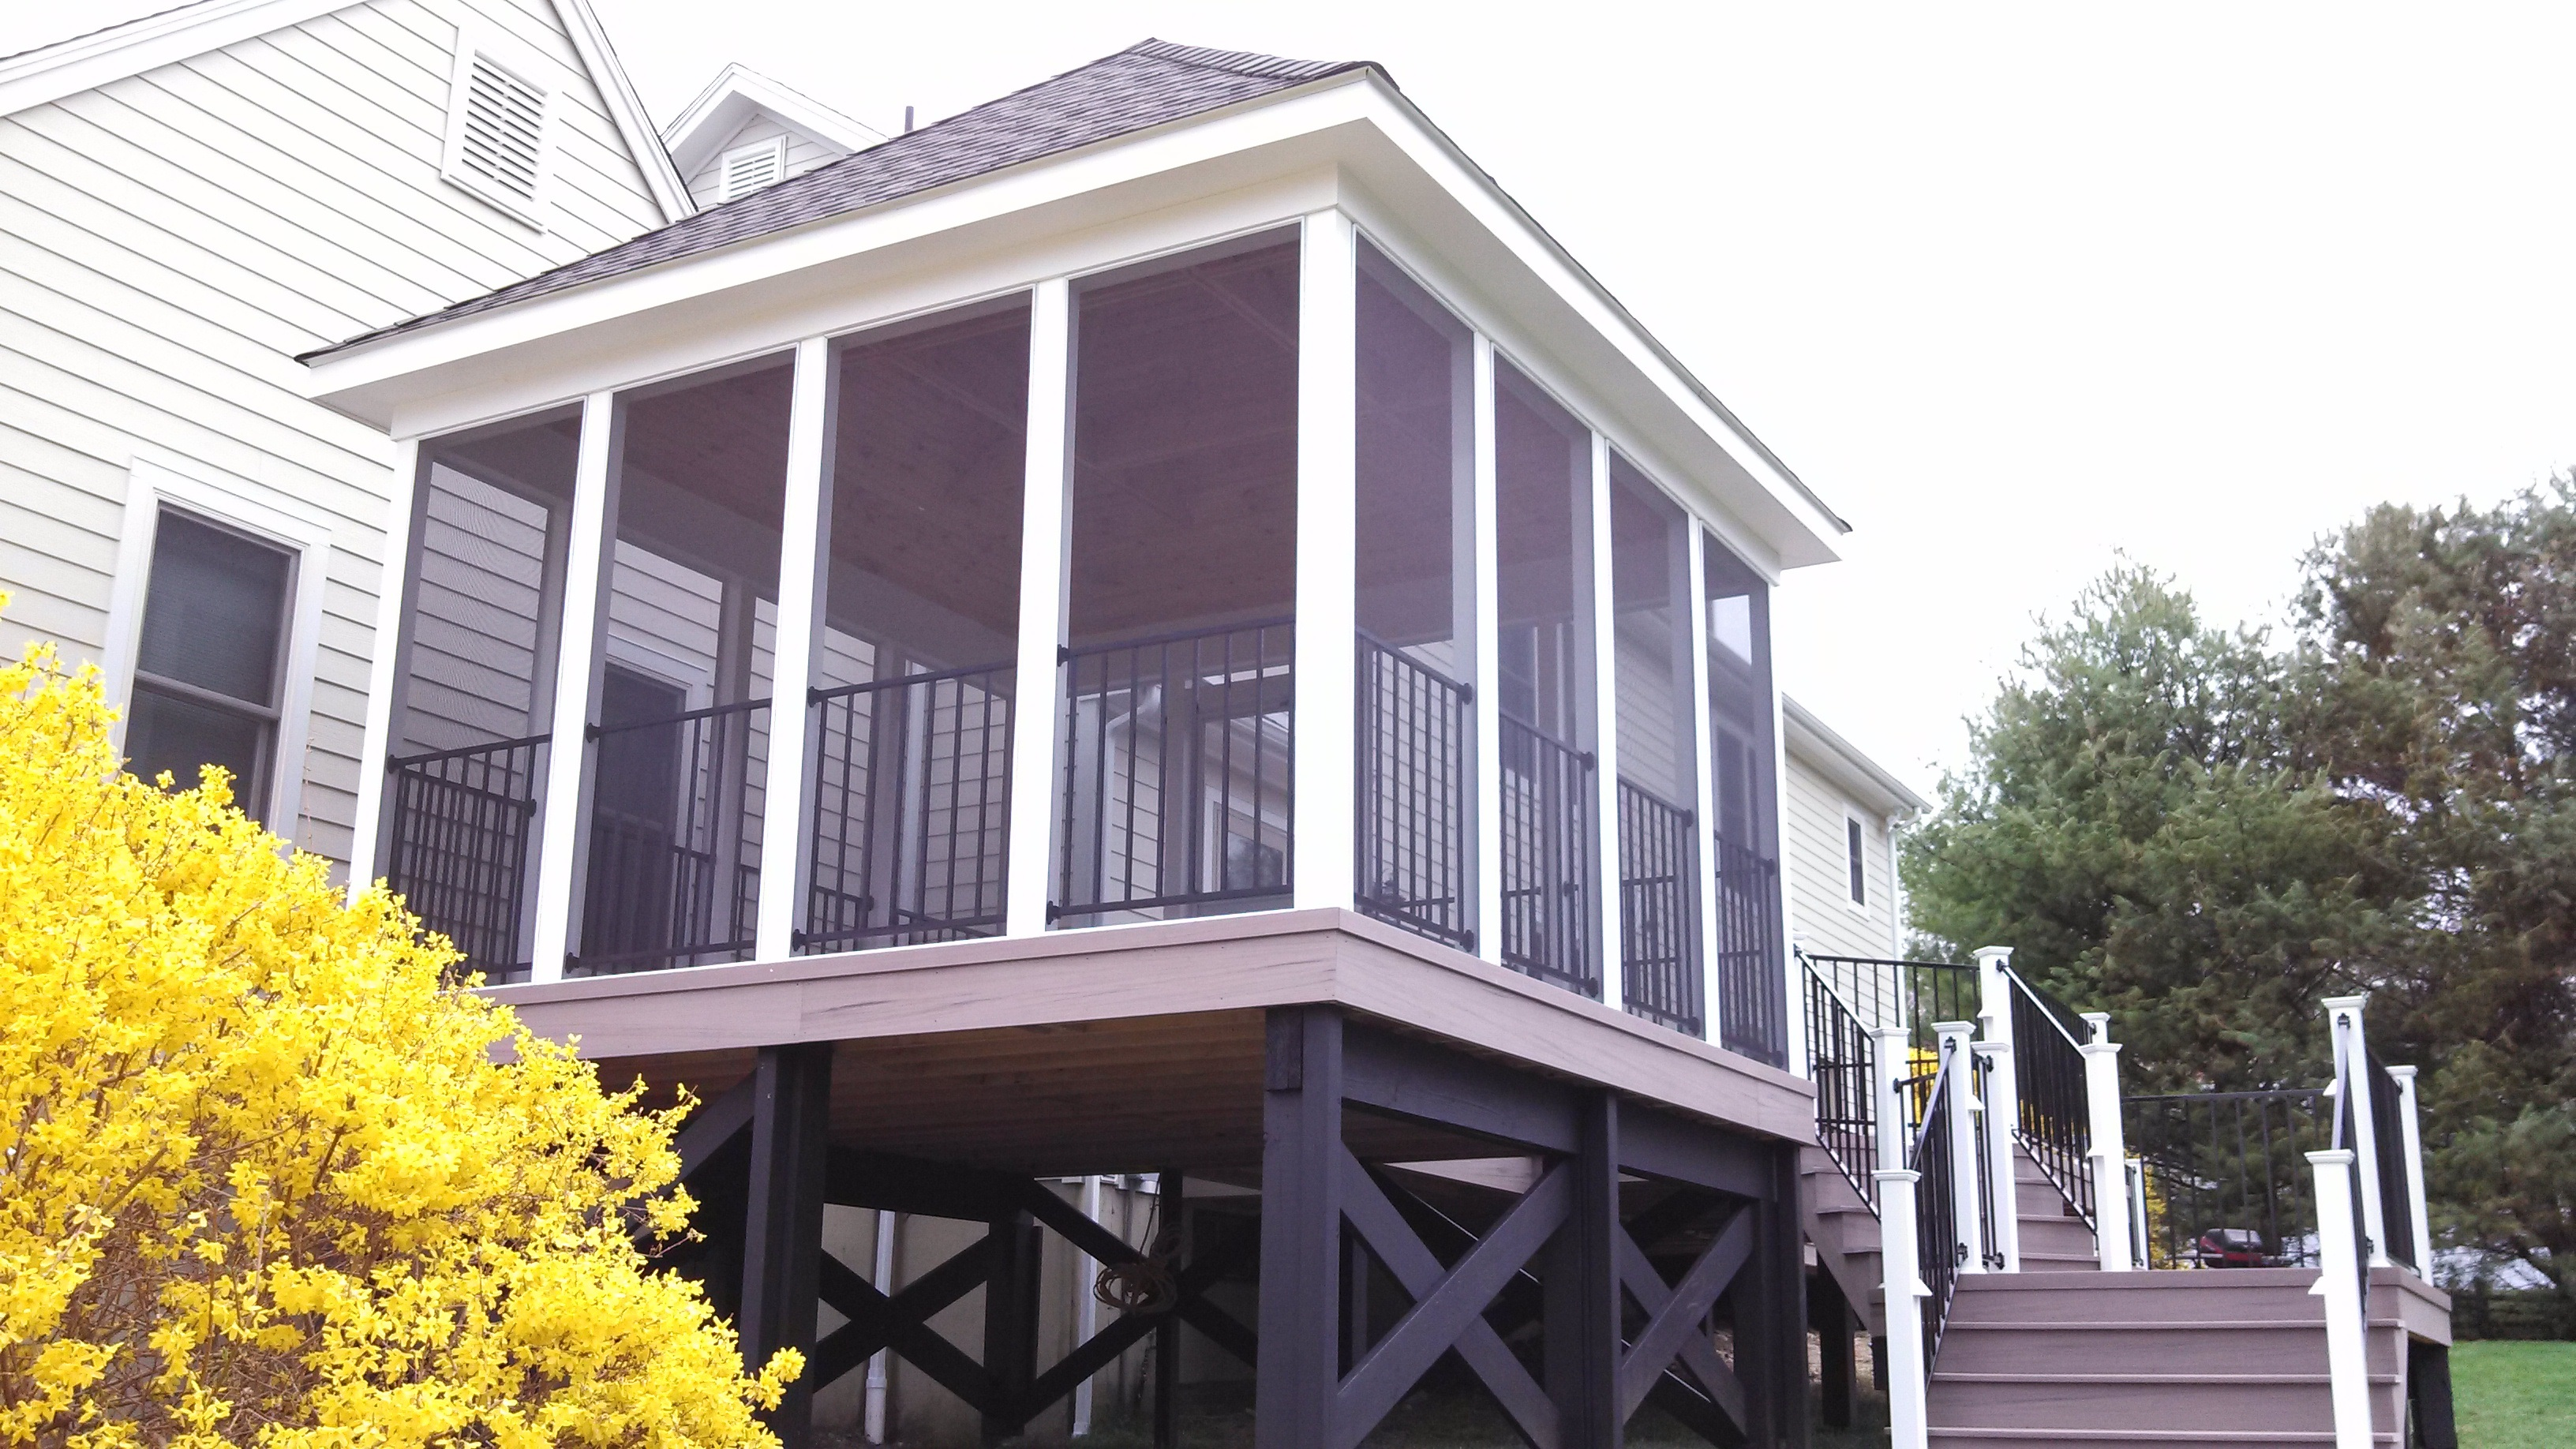 Nice Whether It Is A Central CT Deck And Patio Combination, Or A Screened Porch,  Deck And Pergola Combination With All The Trimmings U2014 Or More, We Take  Great ...